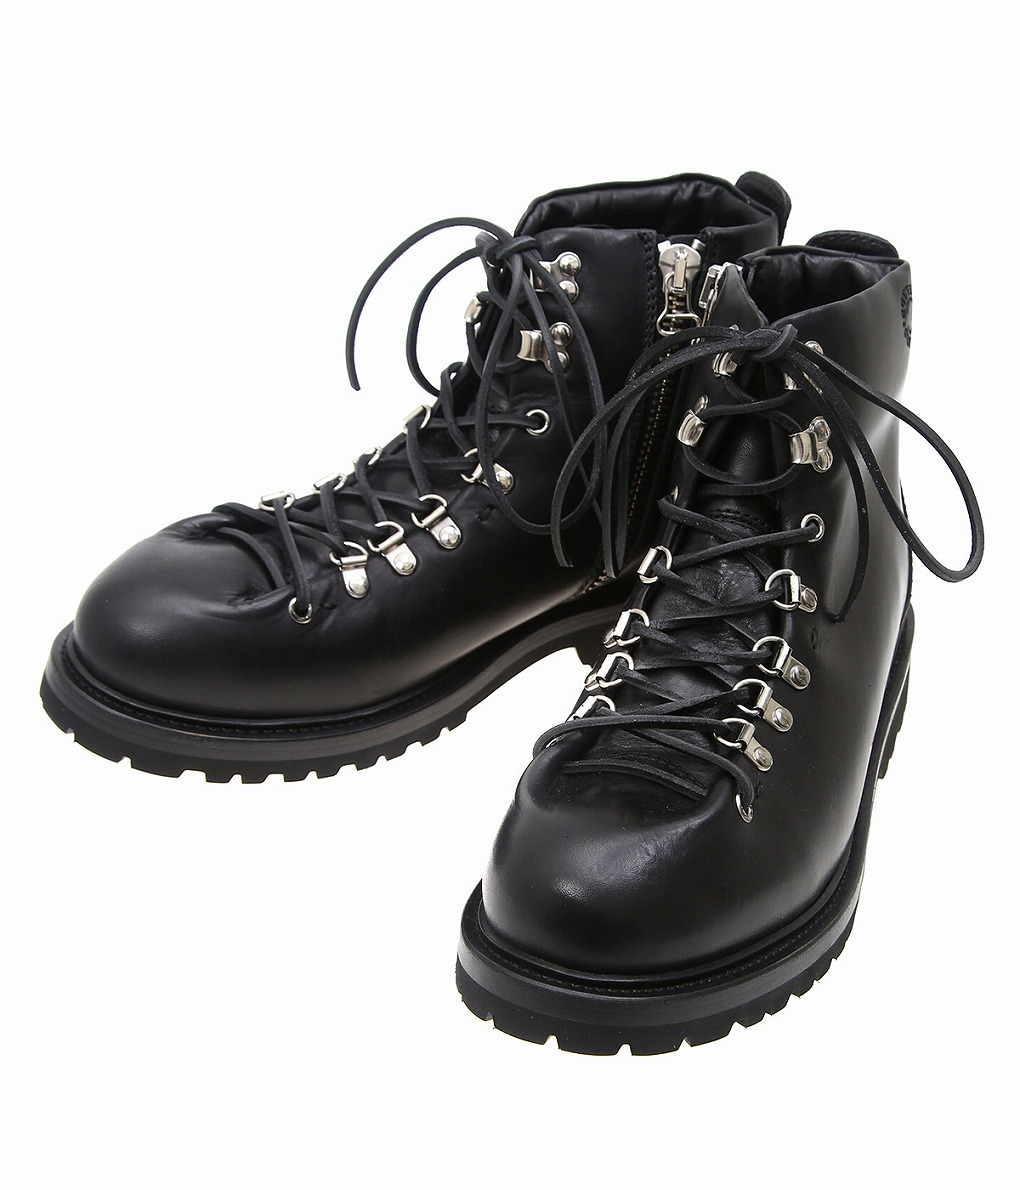 BUTTERO / ブッテロ : CANALONE TREKKING BOOTS(LEATHER) : トレッキングブーツ マウンテンブーツ レザーブーツ : B4950-leather-tosch 【MUS】